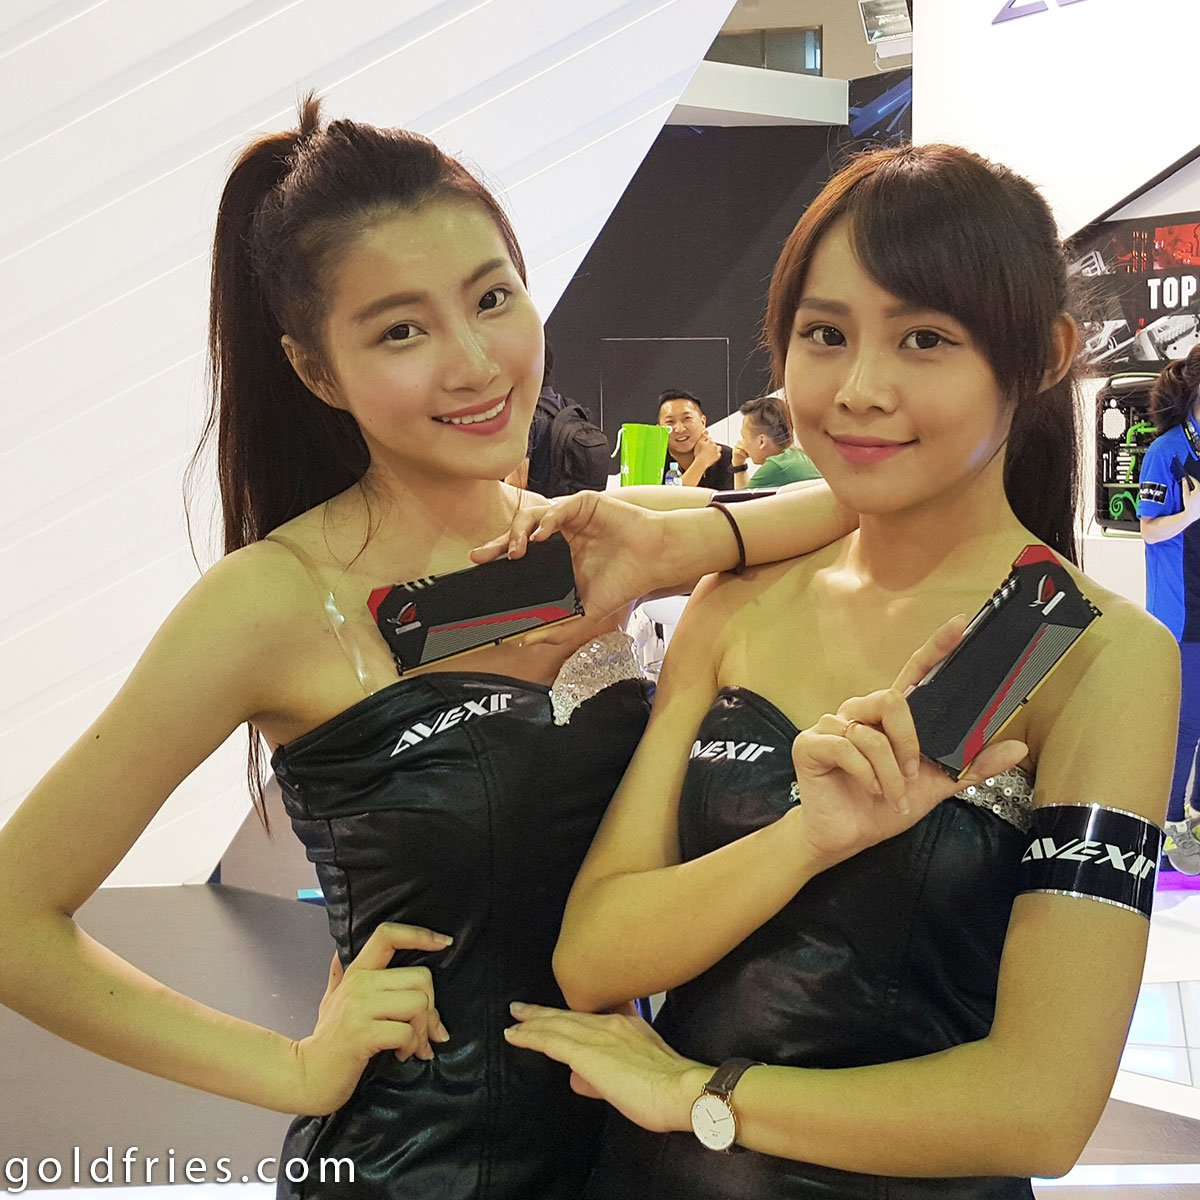 Booth Babes at Computex 2015